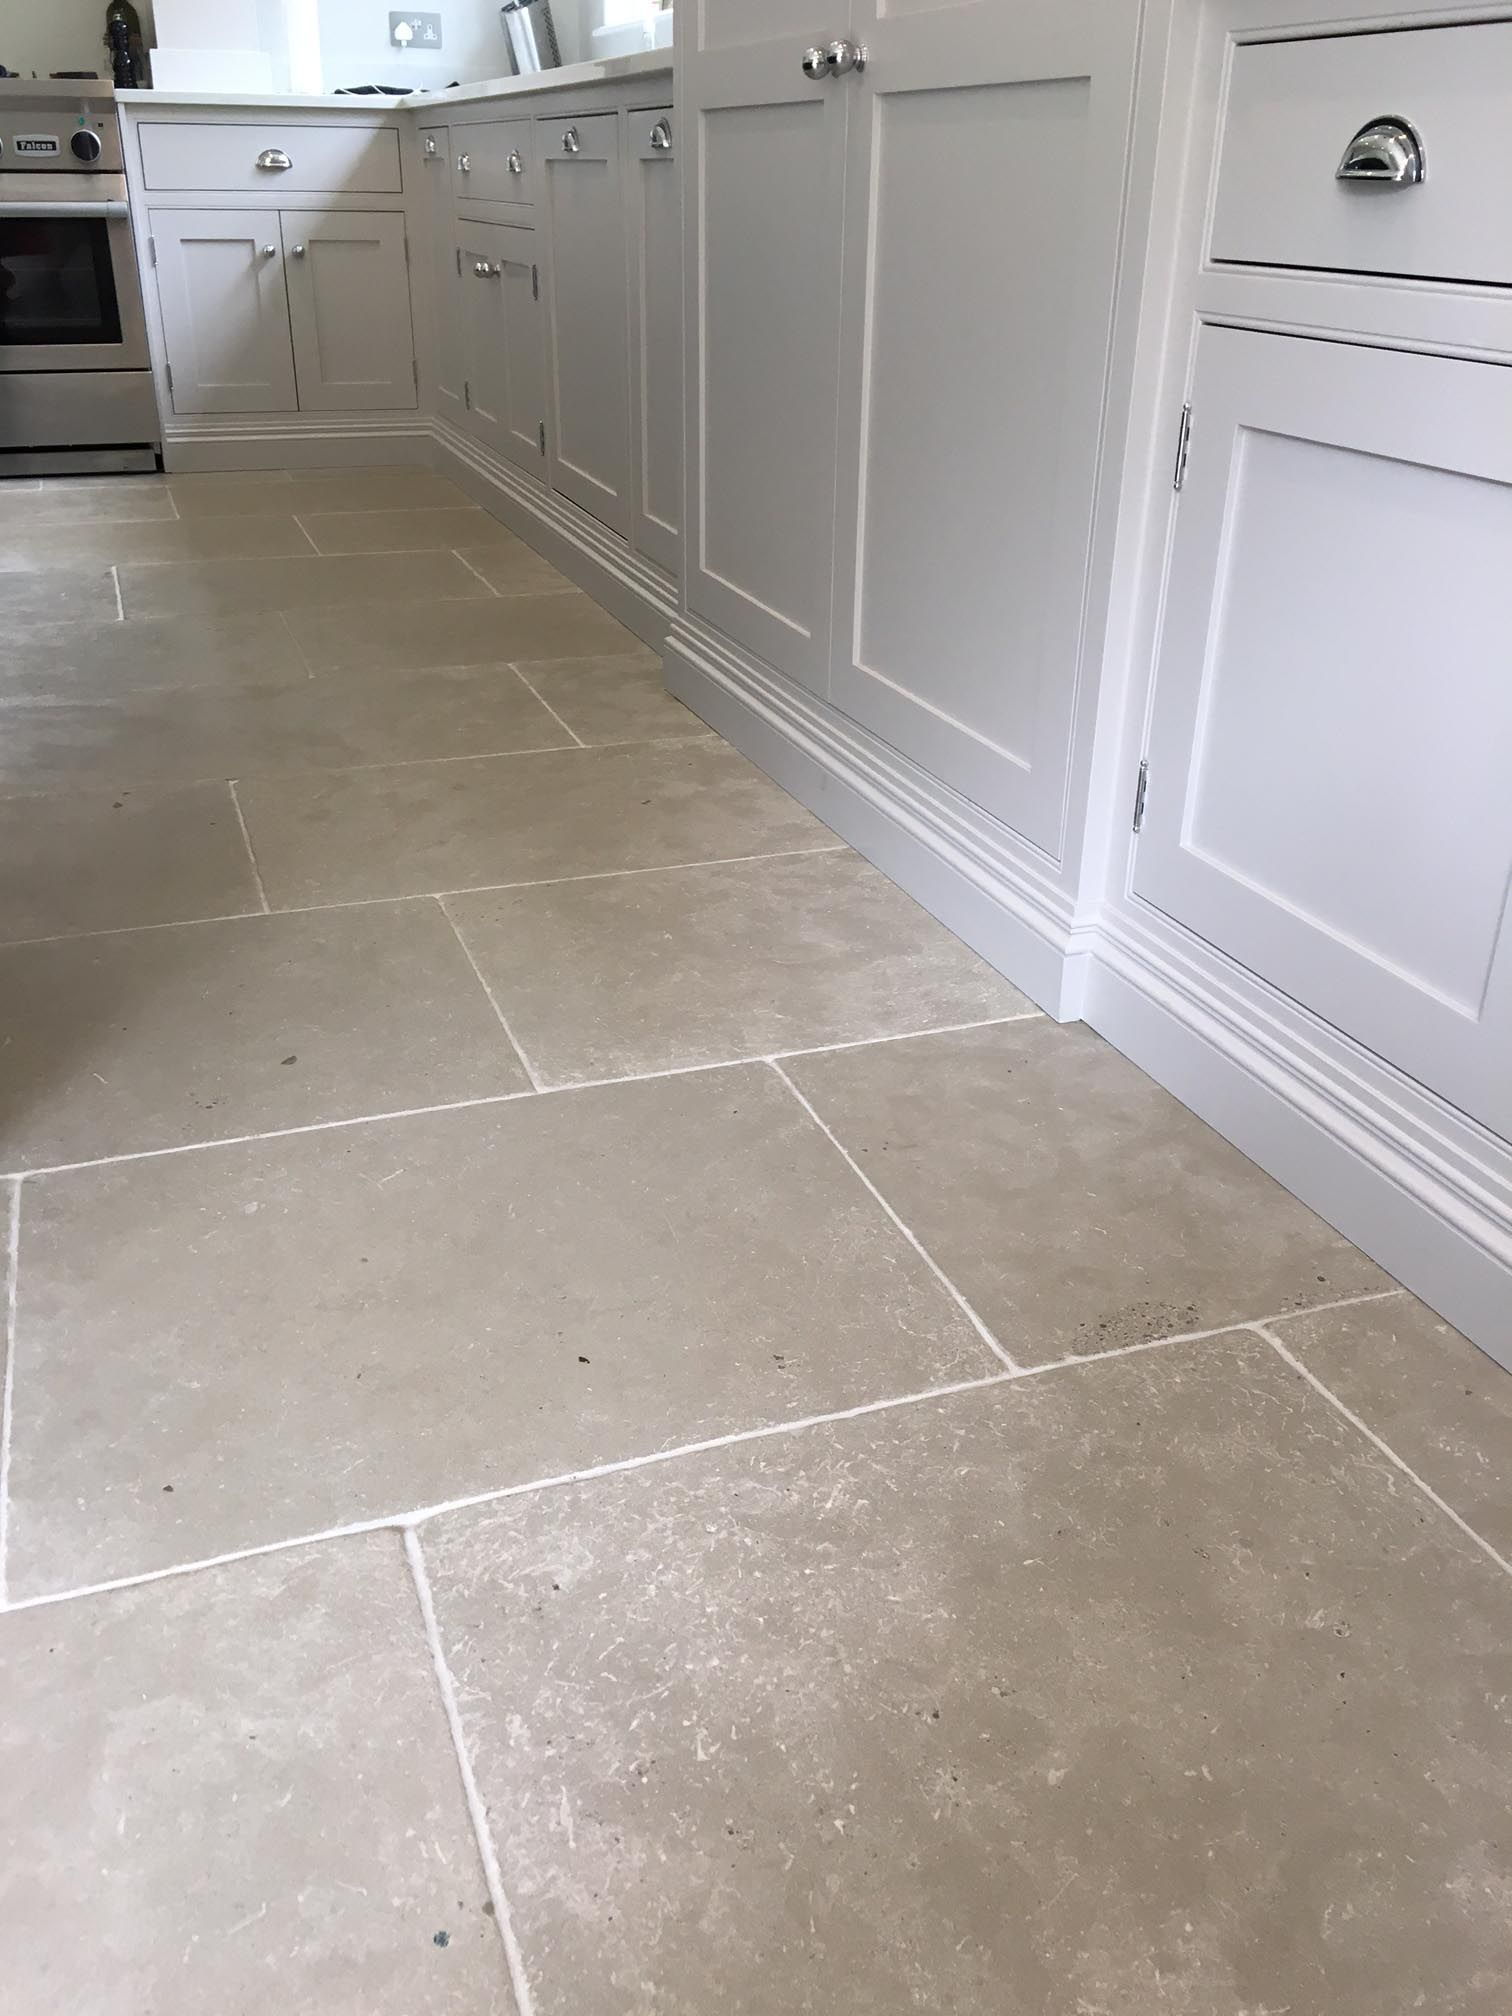 Paris grey limestone tiles for a durable kitchen floor light grey paris grey limestone tiles for a durable kitchen floor light grey toned interior and exterior doublecrazyfo Choice Image